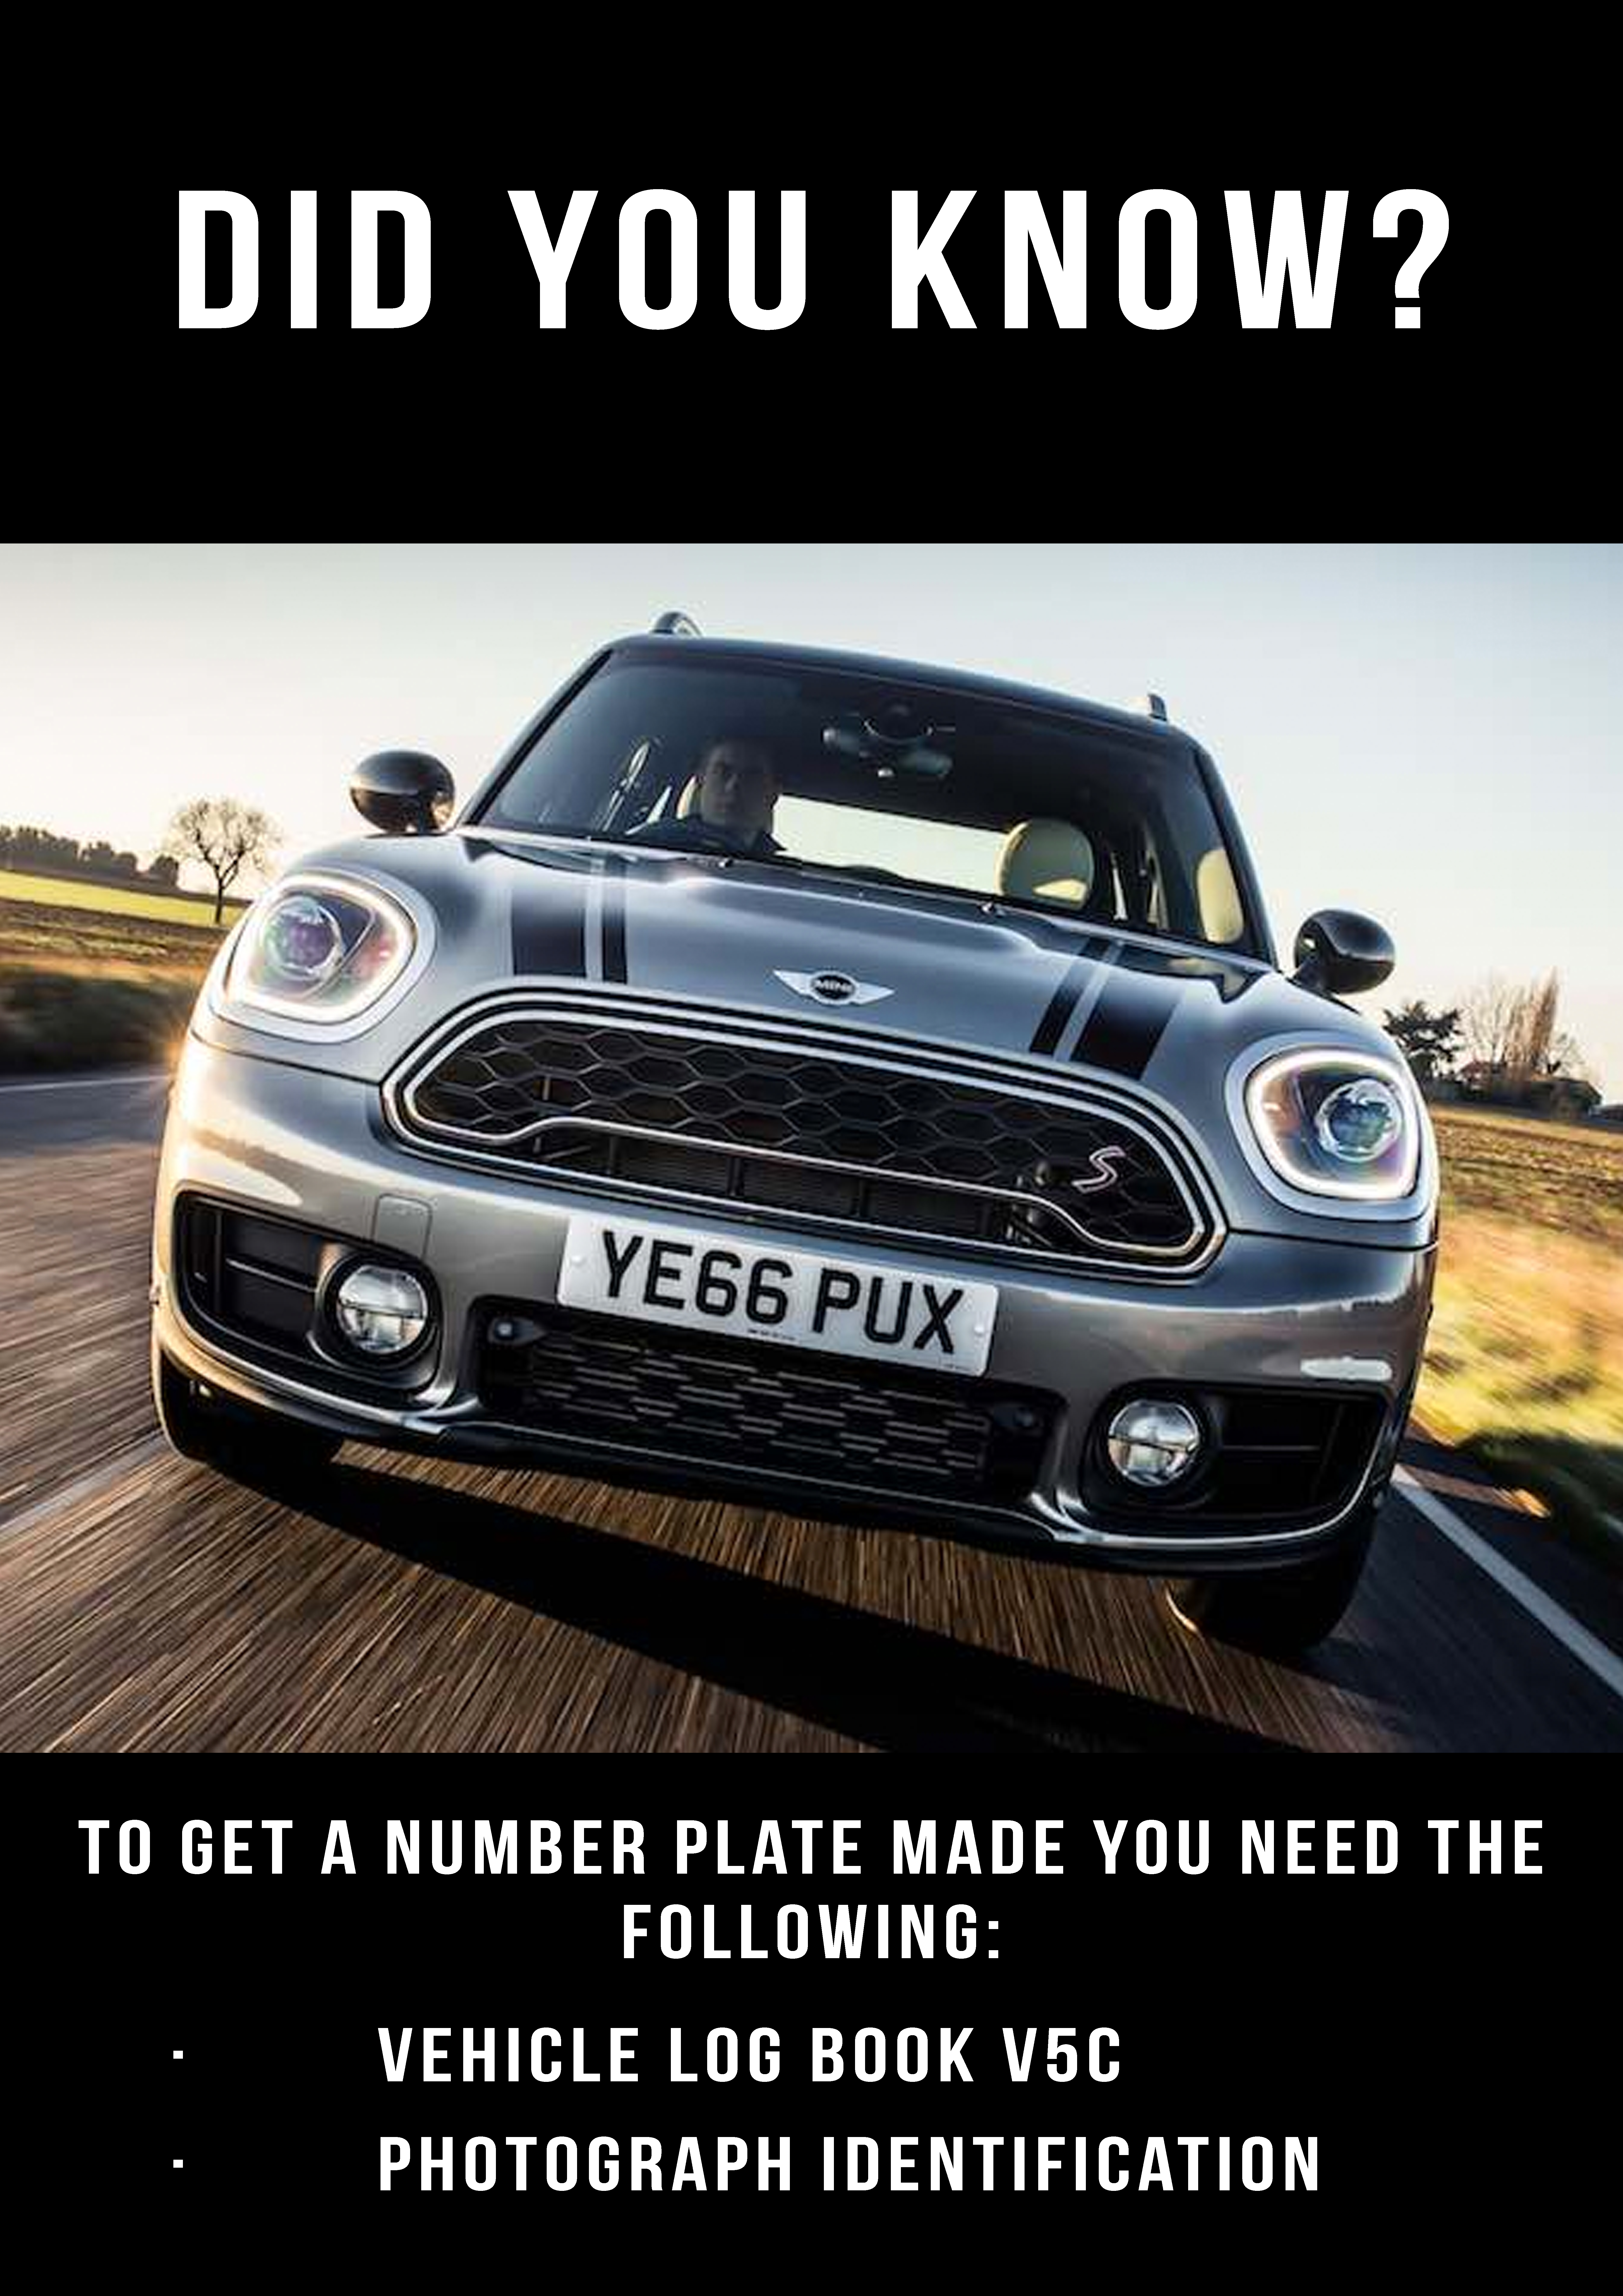 What you need to get a Number Plate Made!